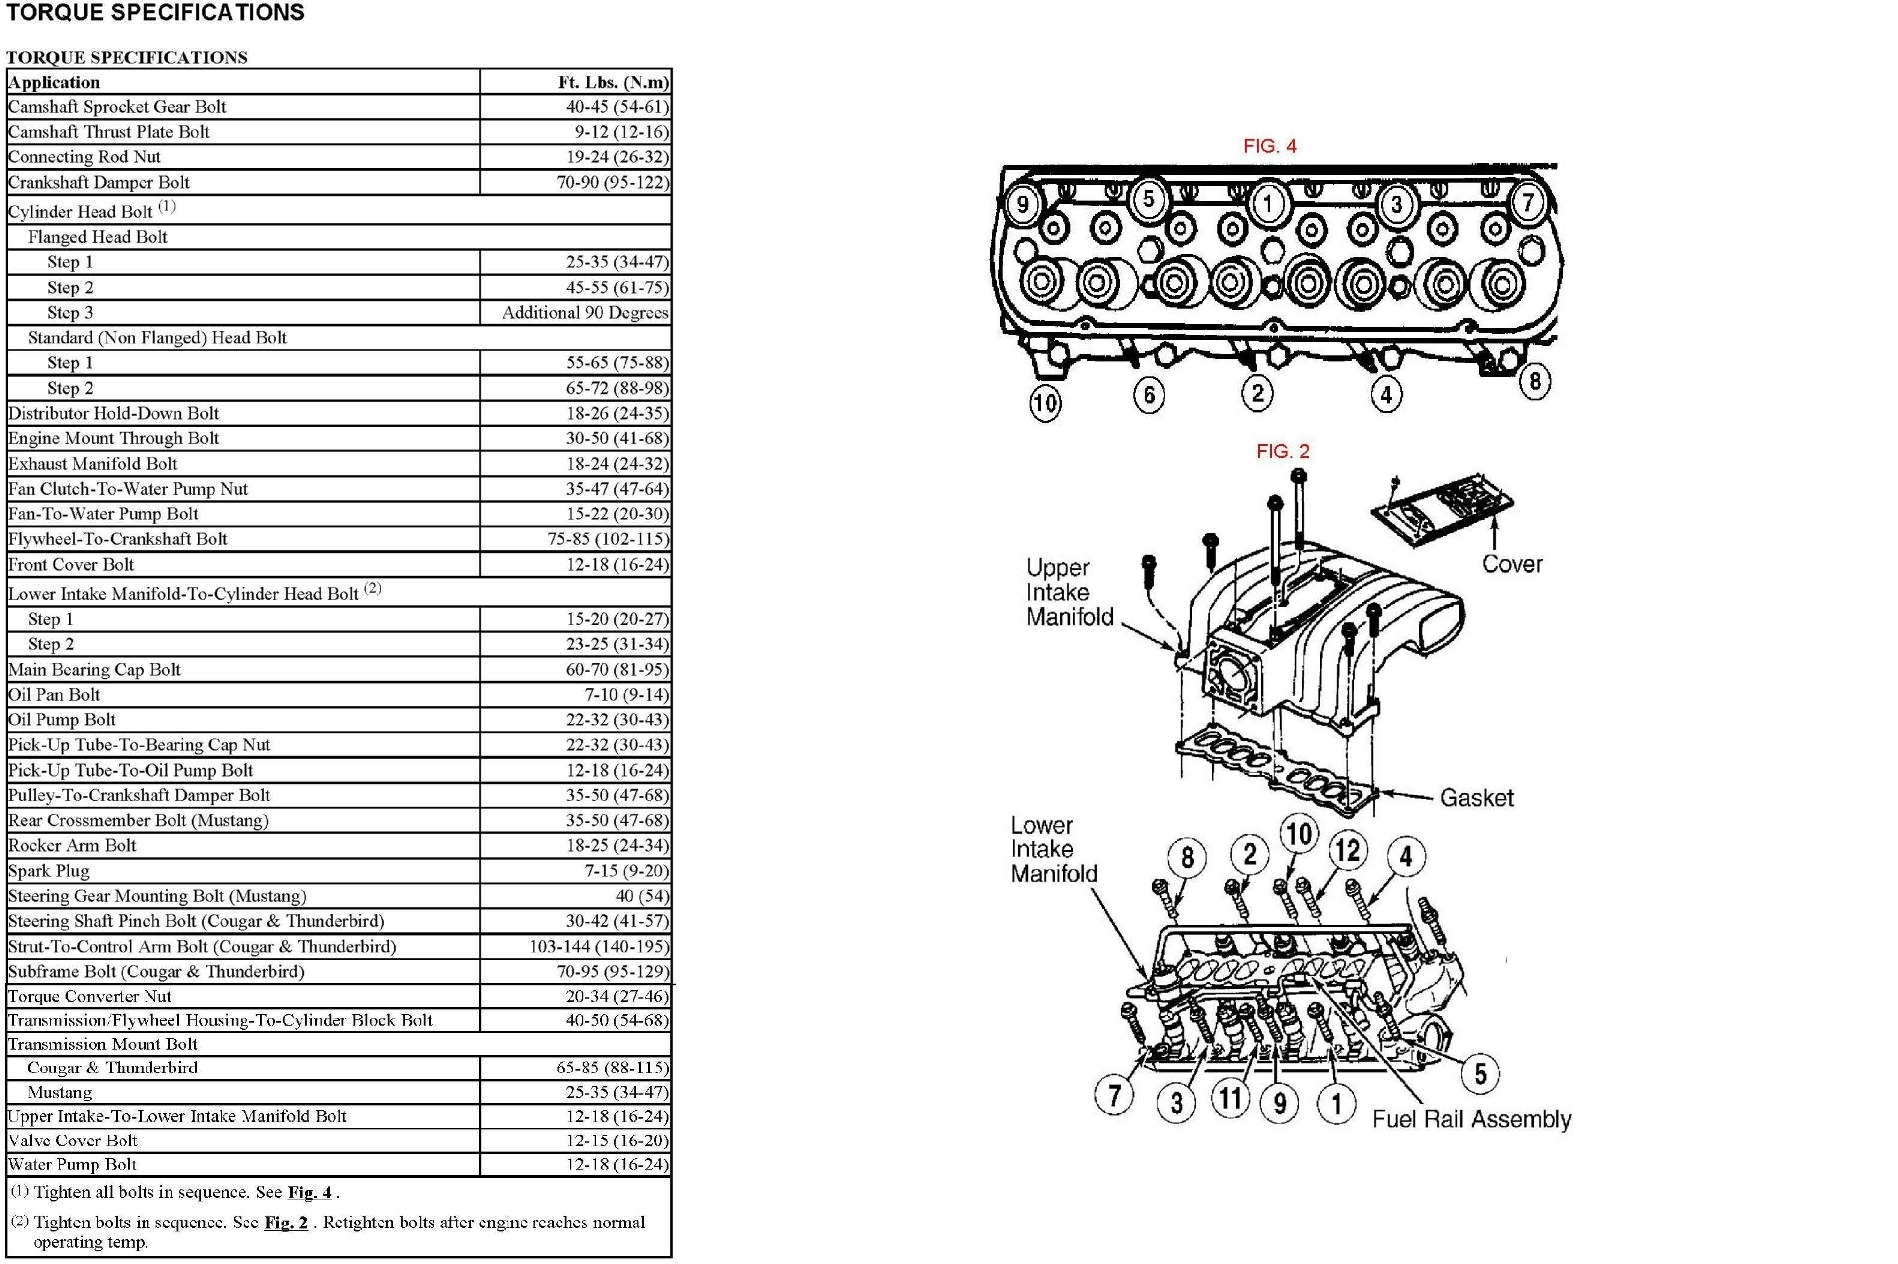 2004 5 4 Triton Engine Diagram Everything You Need To Know About 1979 1993 Foxbody Mustangs Mustang 50l Torque Ratings